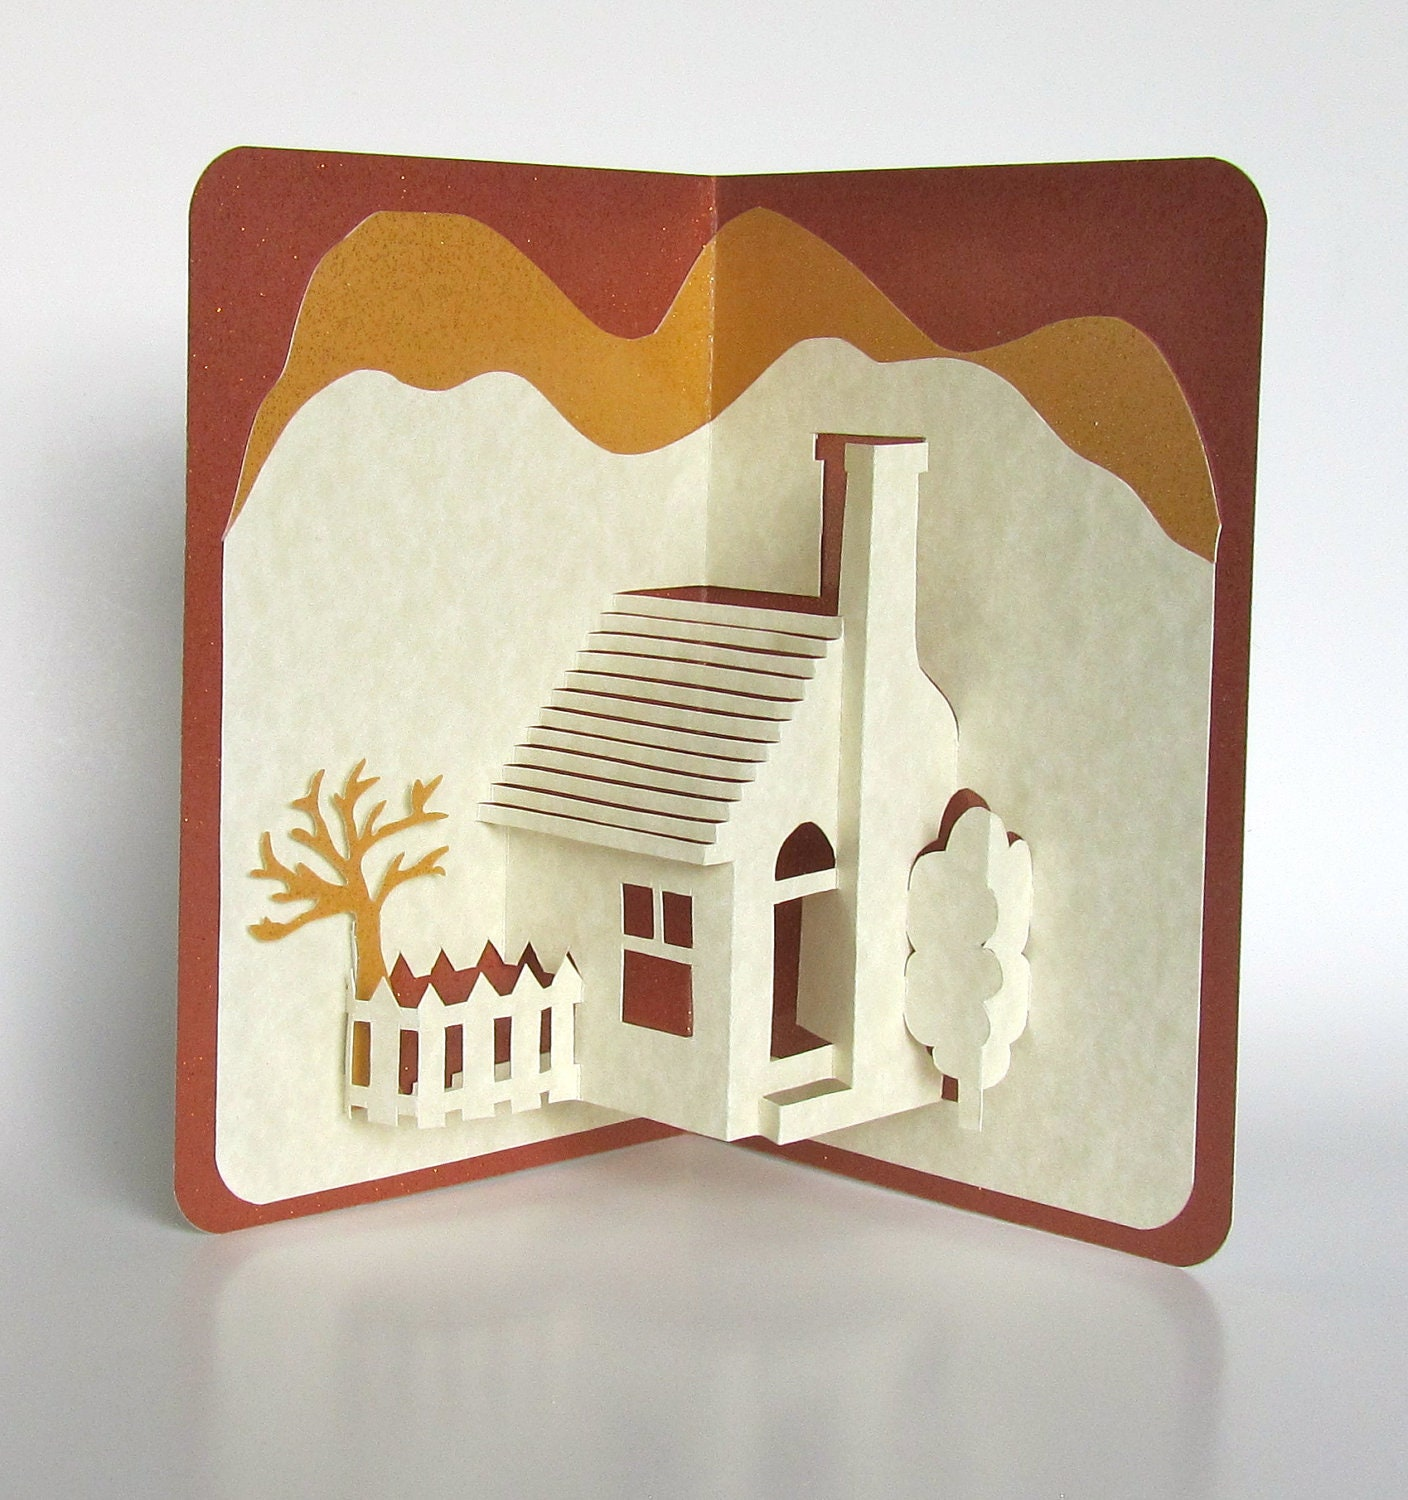 Home pop up 3d card home d cor origamic architecture handmade for Handmade items for home